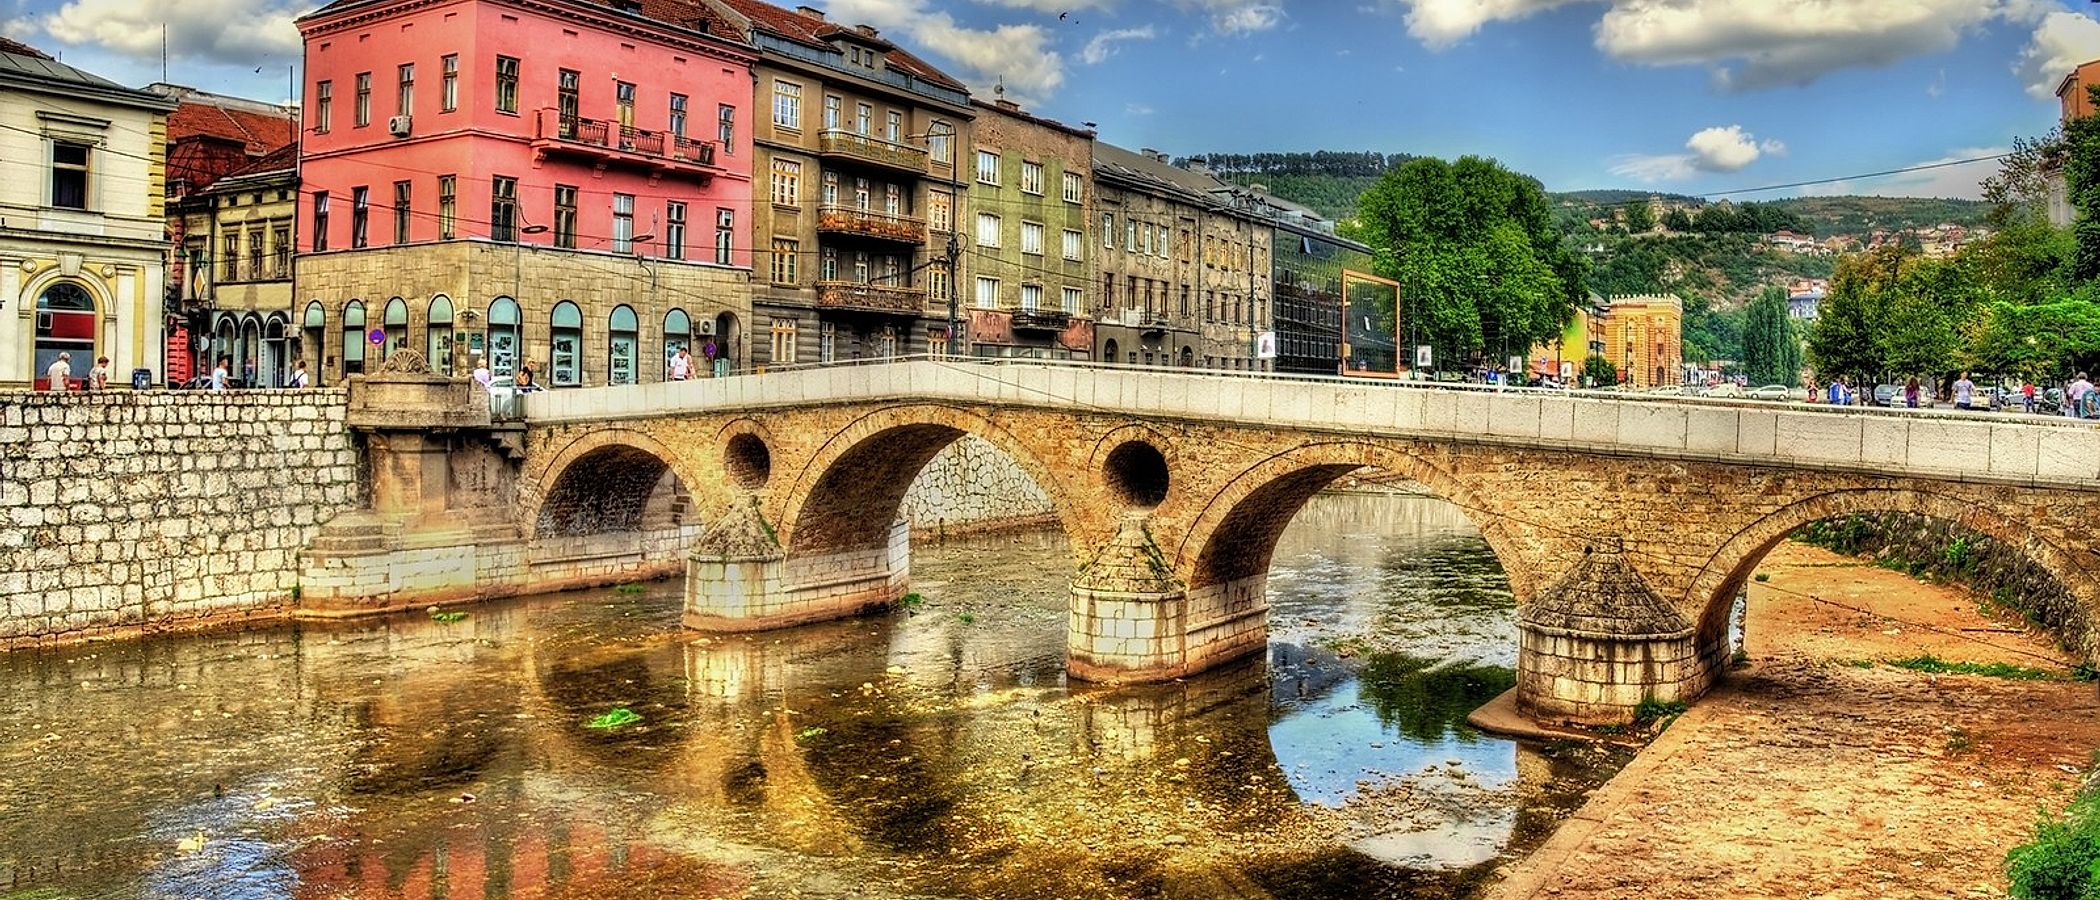 Sarajevo Bosnia Herzegovina Travel Vacation Packages